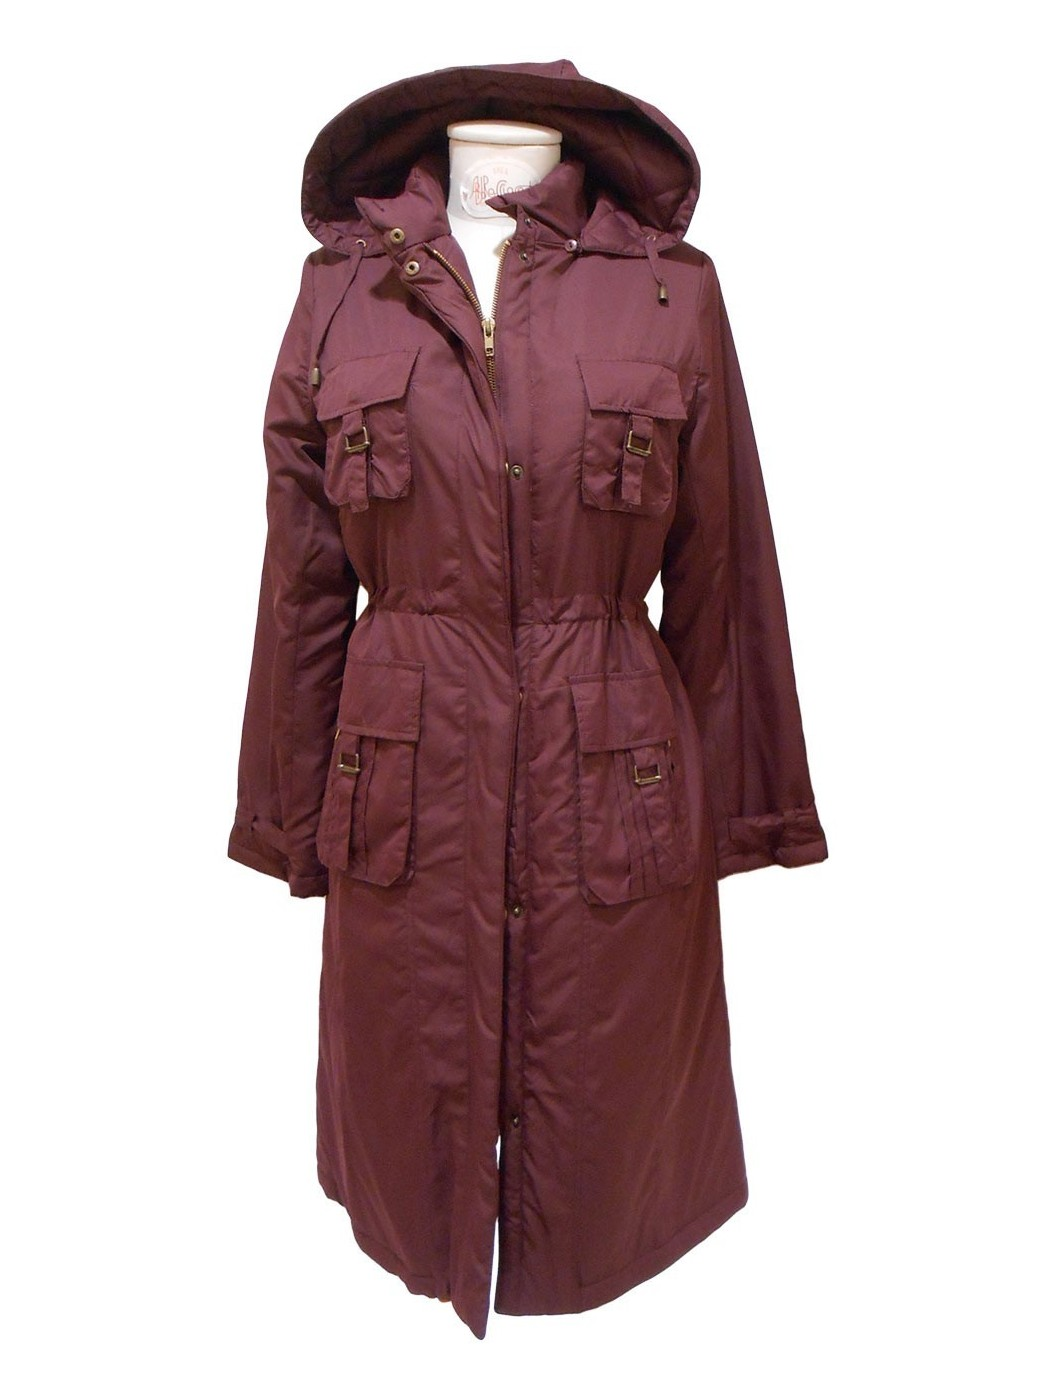 Padded long jacket by Paul Brial